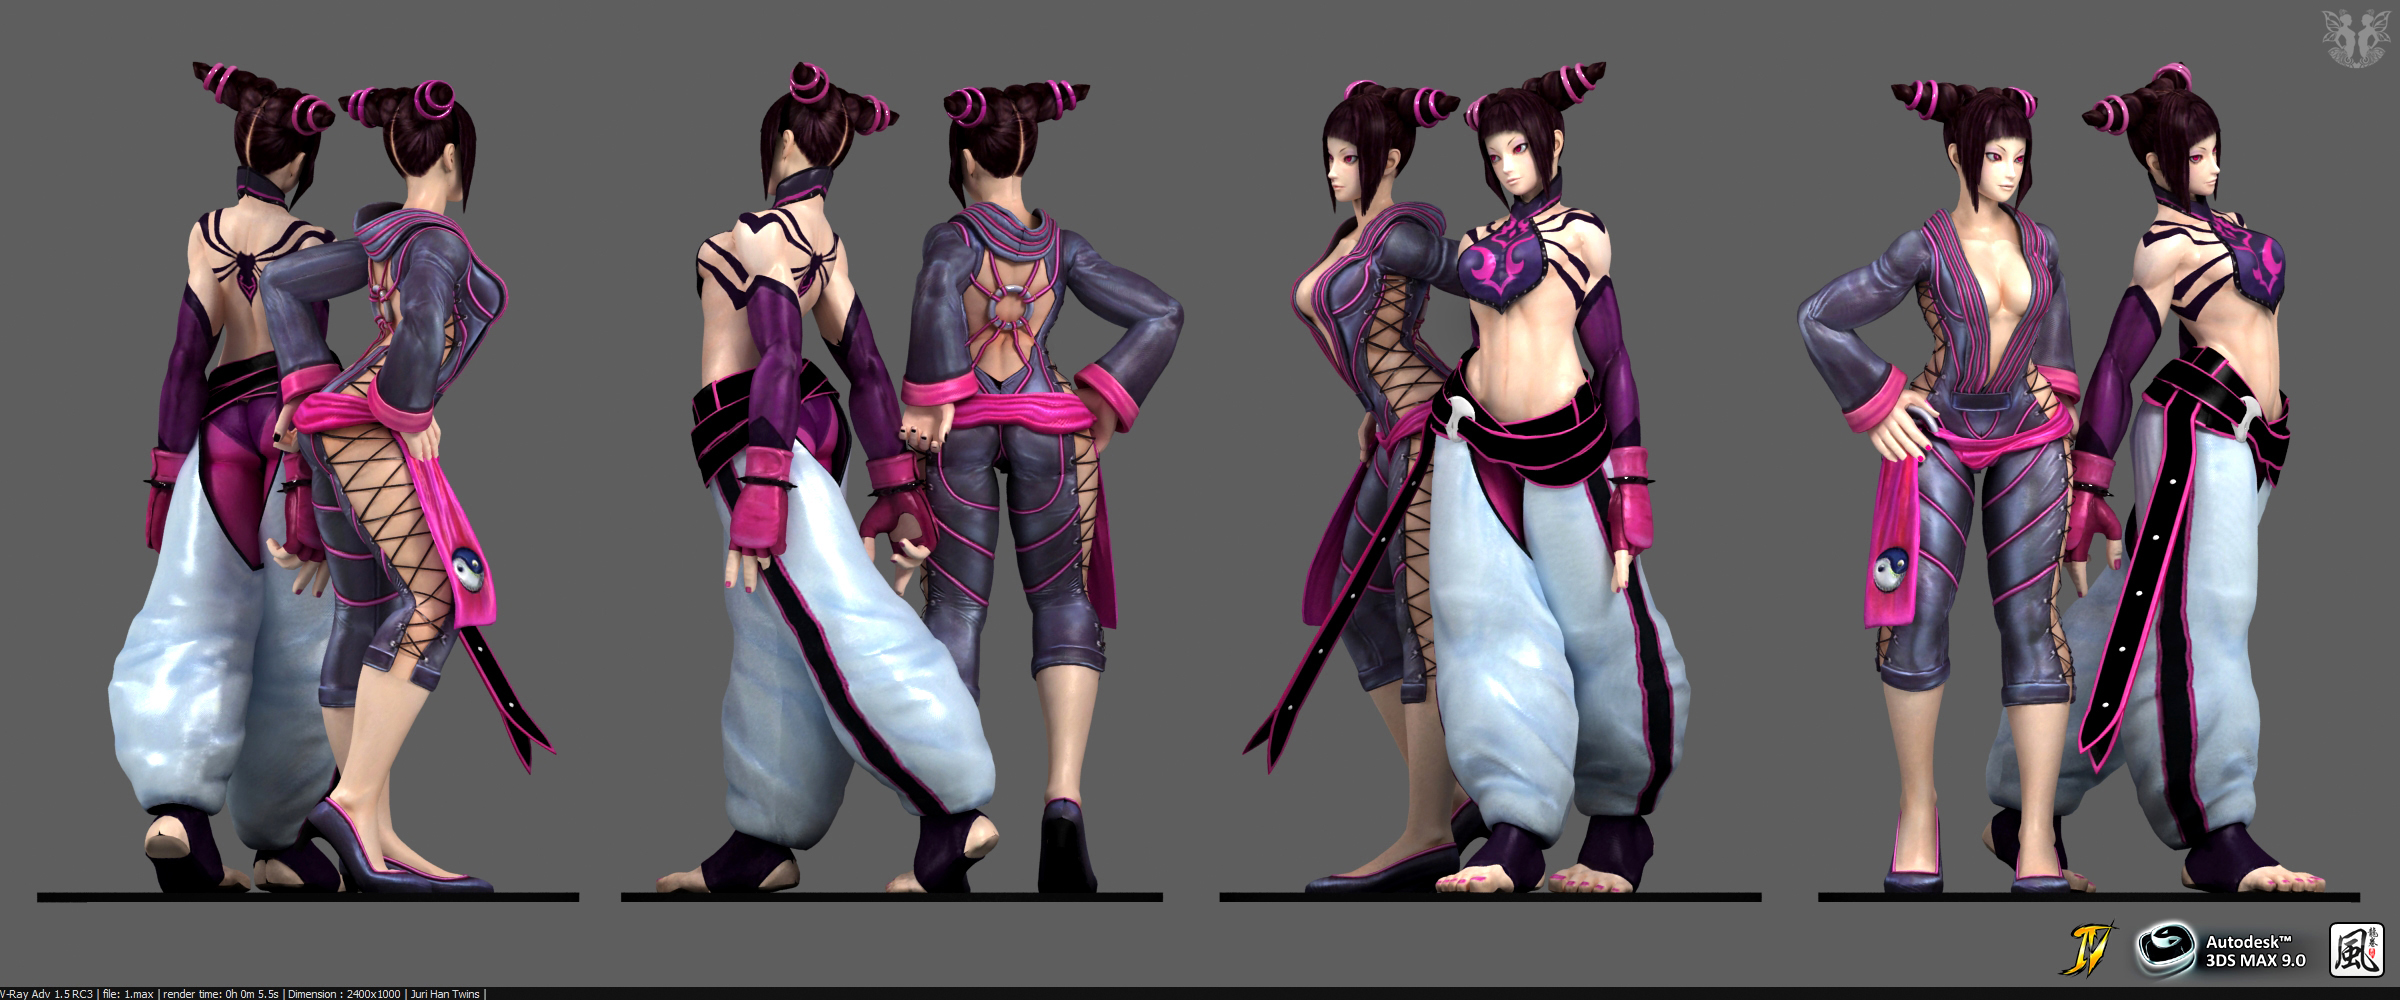 Juri Street Fighter Images Juri Is Thebest Hd Wallpaper And